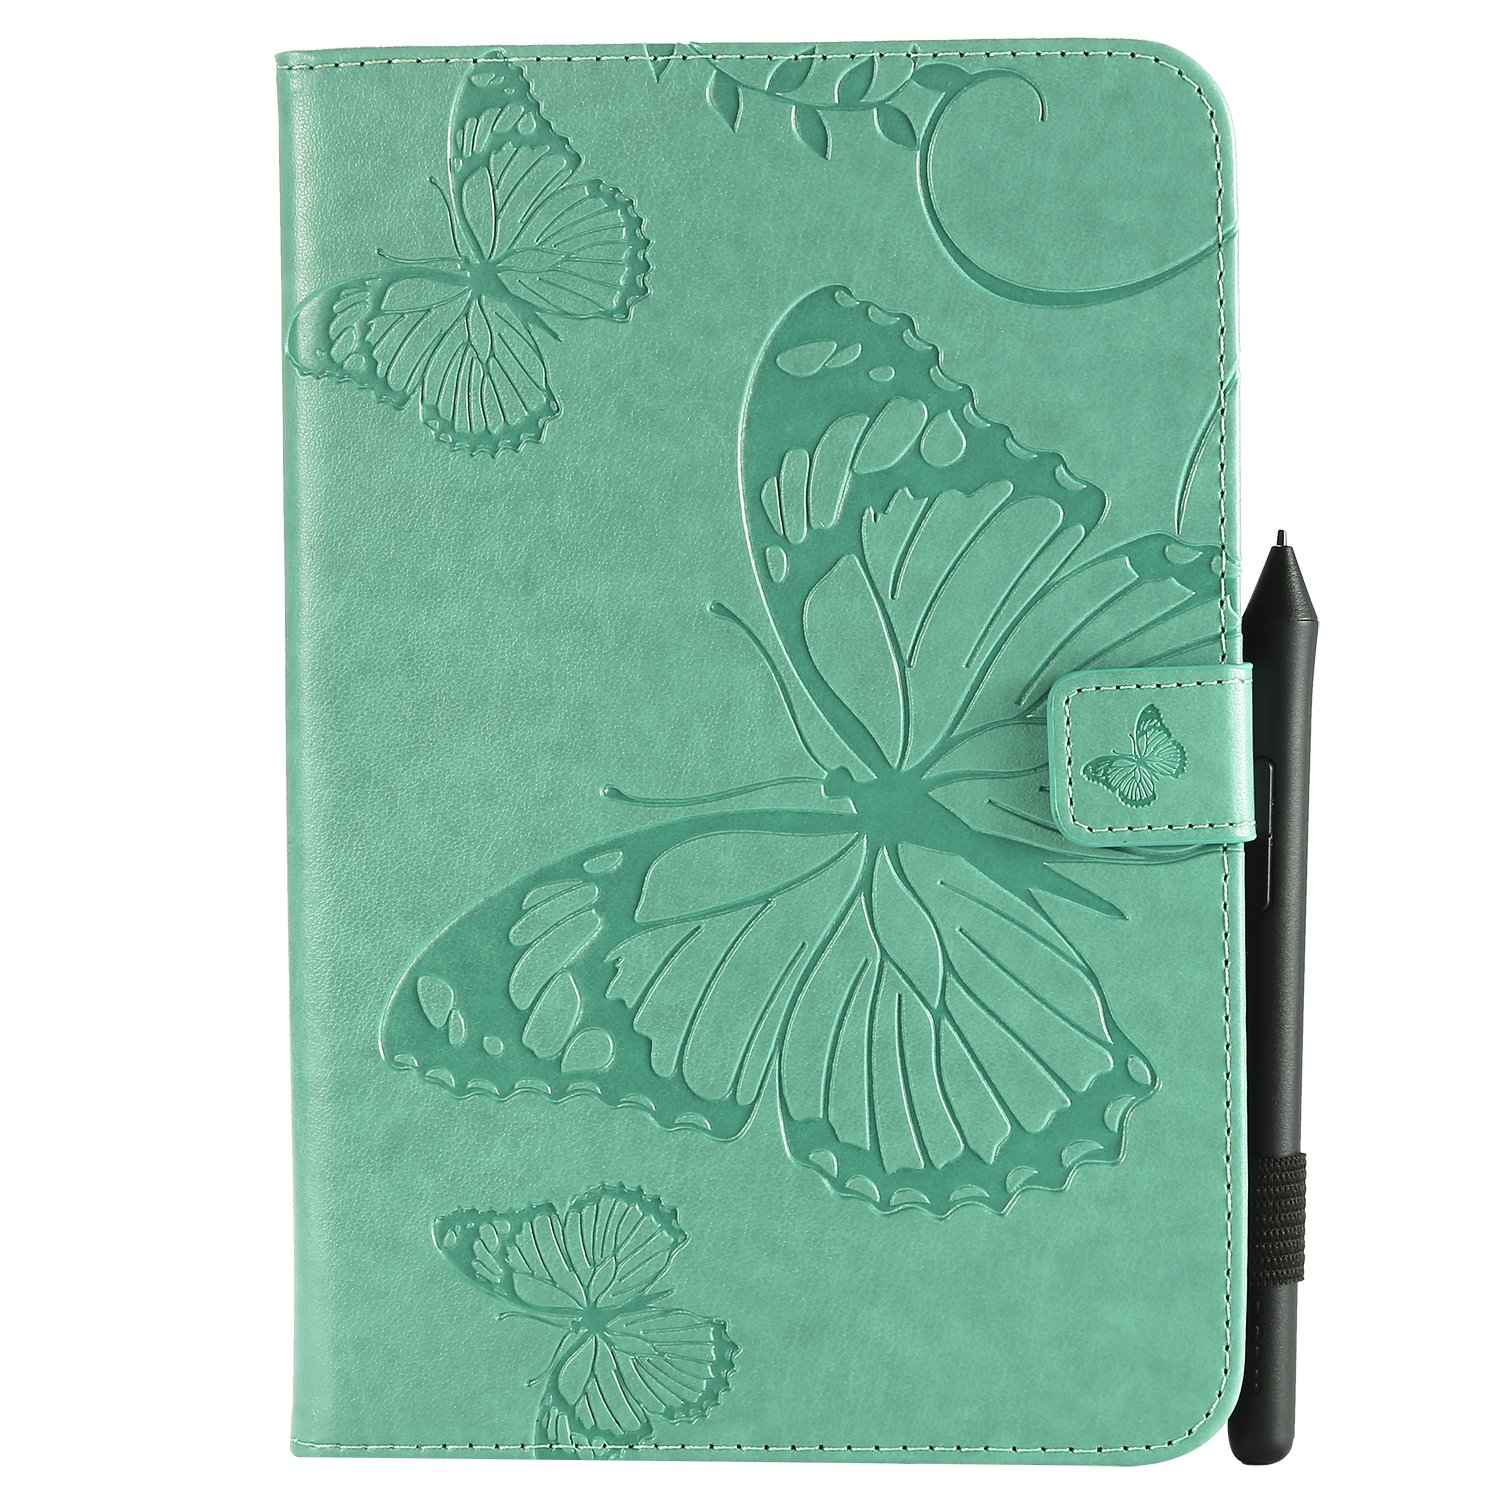 Bear Village iPad Mini 3 Case, Butterfly Embossed Anti Scratch Shell with Adjust Stand, Smart Stand PU Leather Case for Apple iPad Mini 3, Green